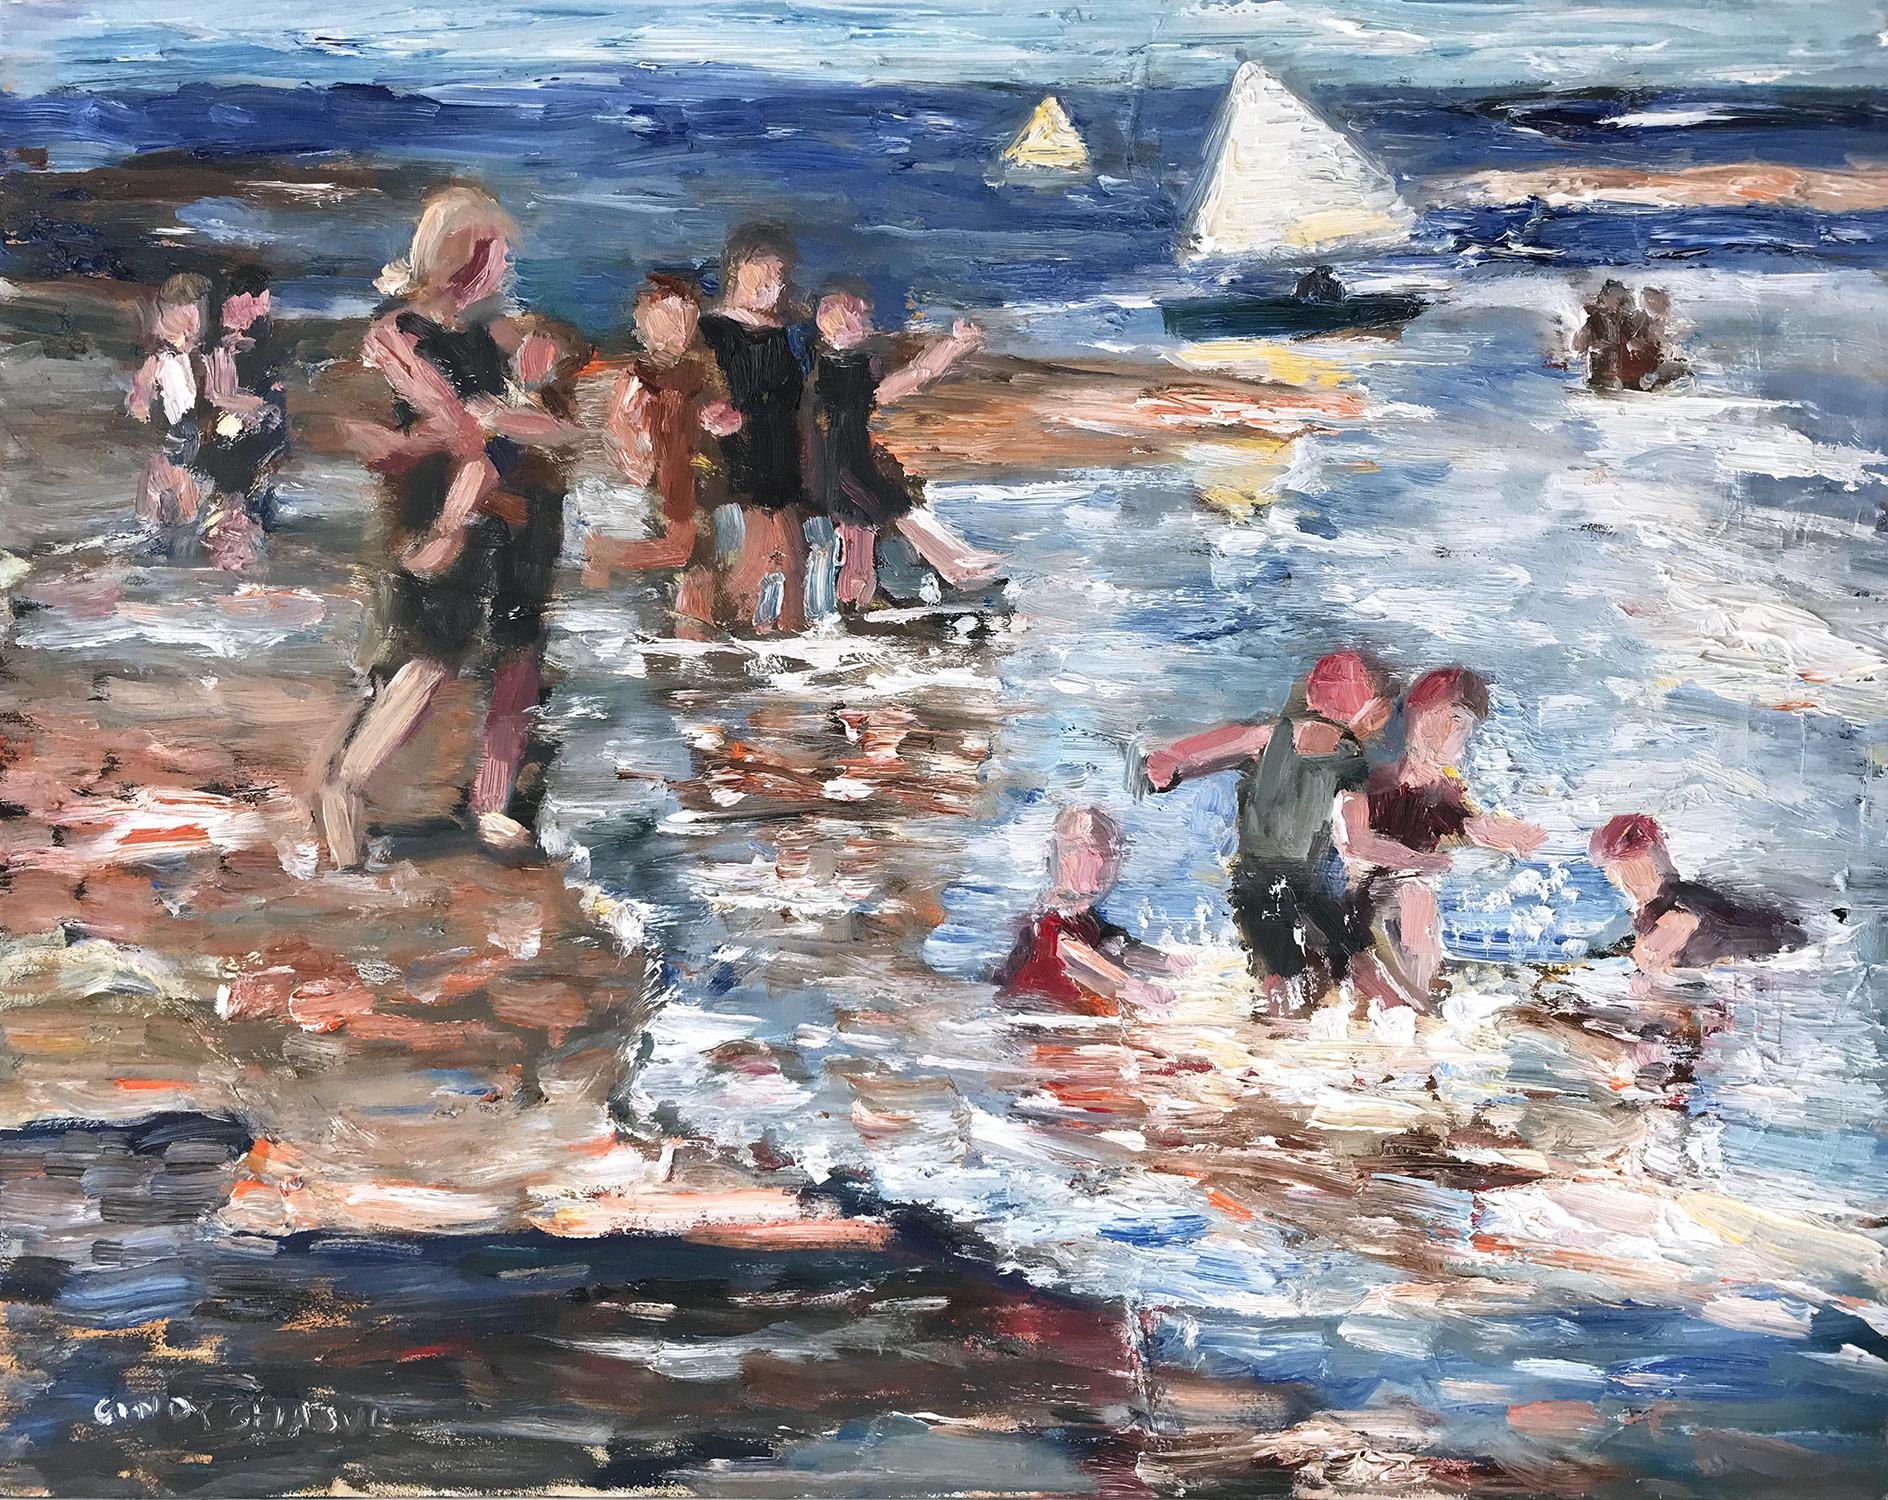 """Splashes at the Beach"" Impressionistic Beach Scene Oil Painting on Panel"